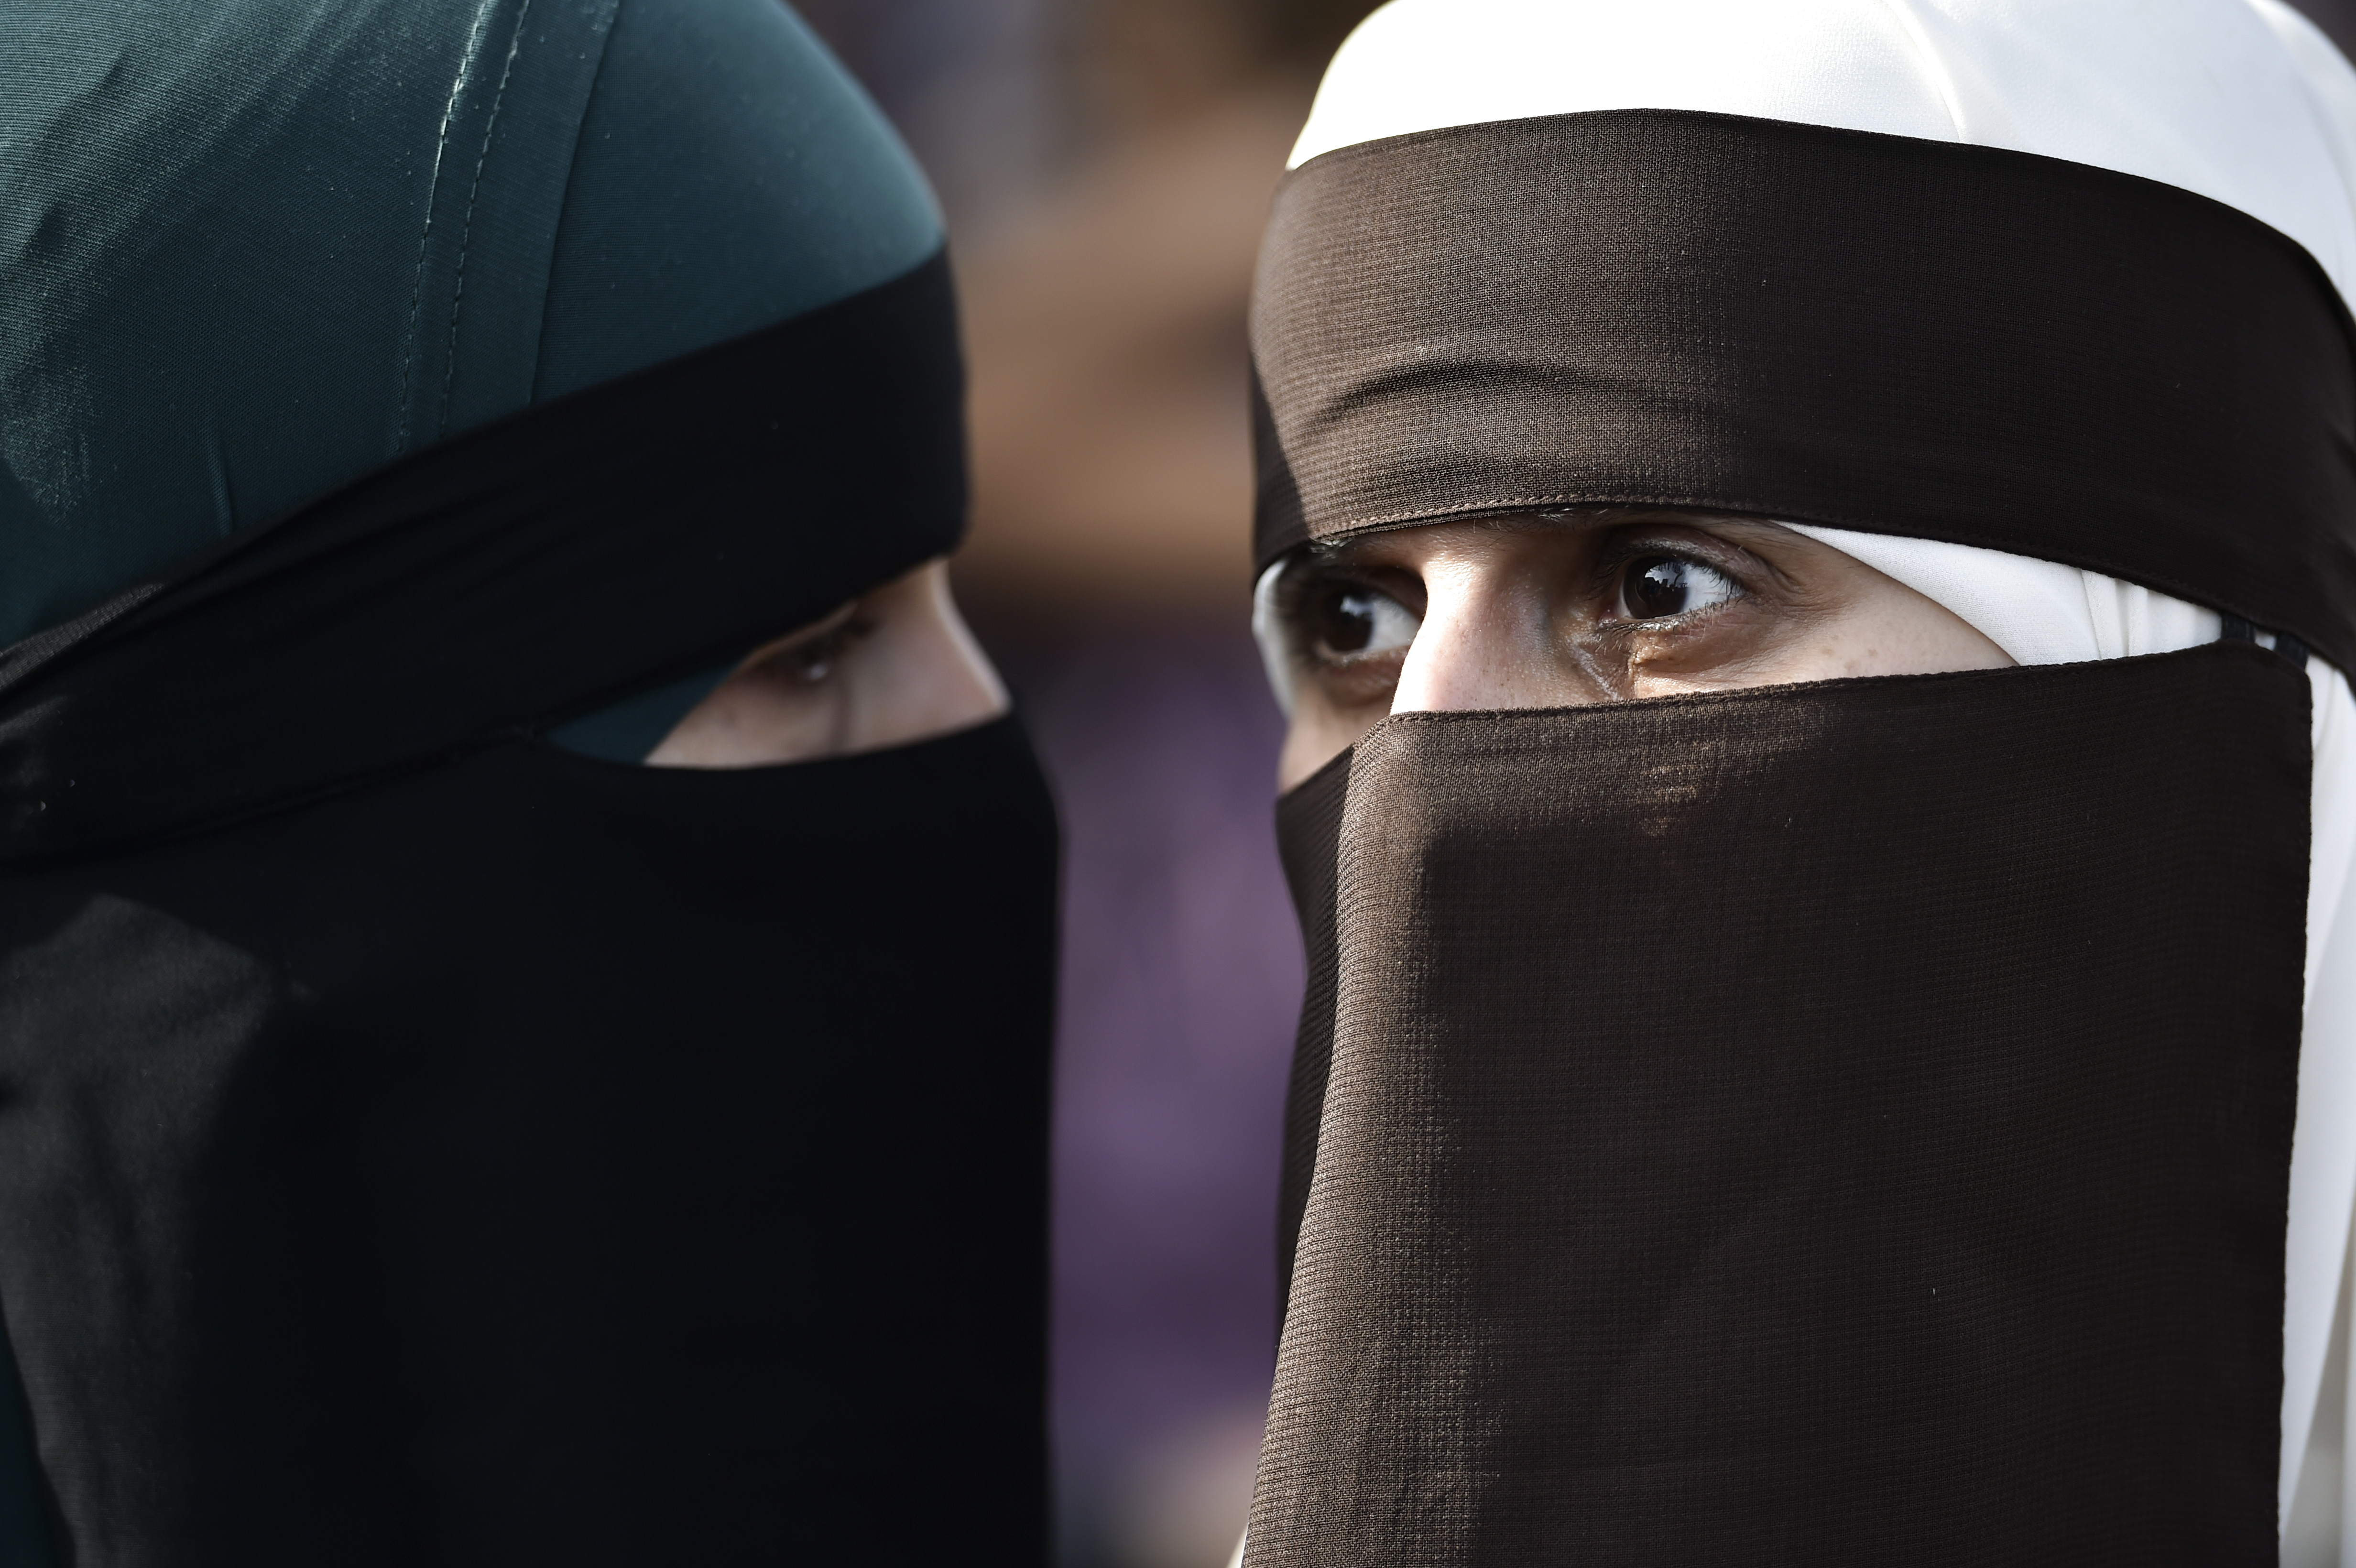 Women wearing niqab to veil their faces take part in a demonstration on August 1, 2018, the first day of the implementation of the Danish face veil ban, in Copenhagen, Denmark.